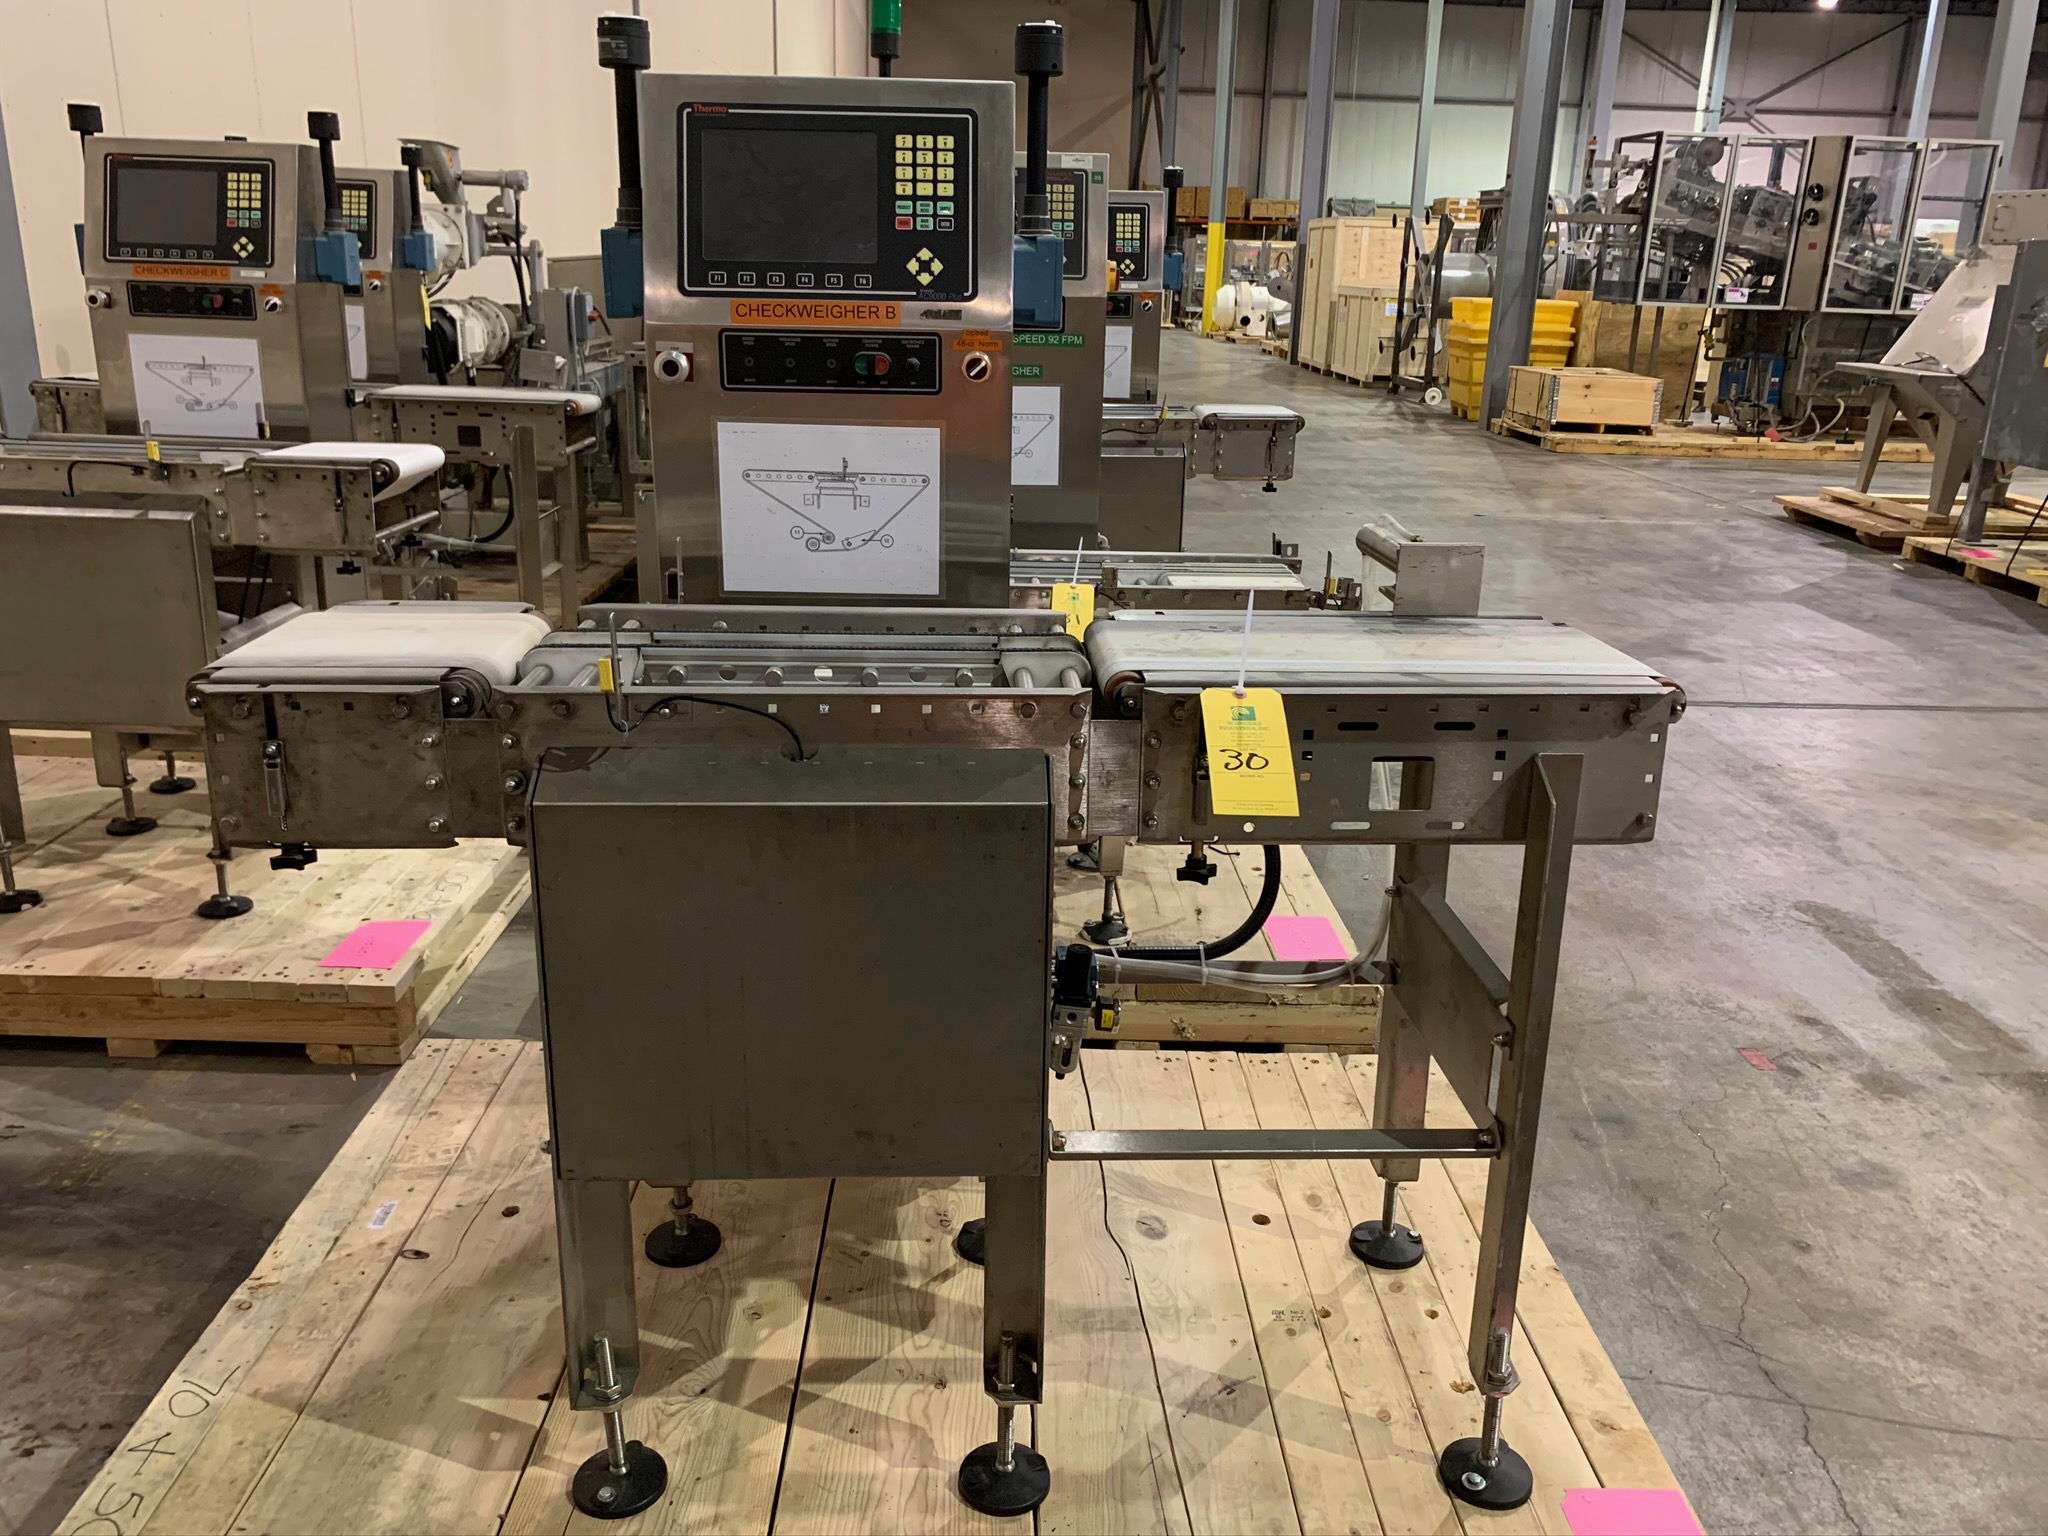 Lot 30 - Thermo Scientific Check Weigher Model AC9000(p) -8120 S/N 08082739 (Rigging Fee - $50)